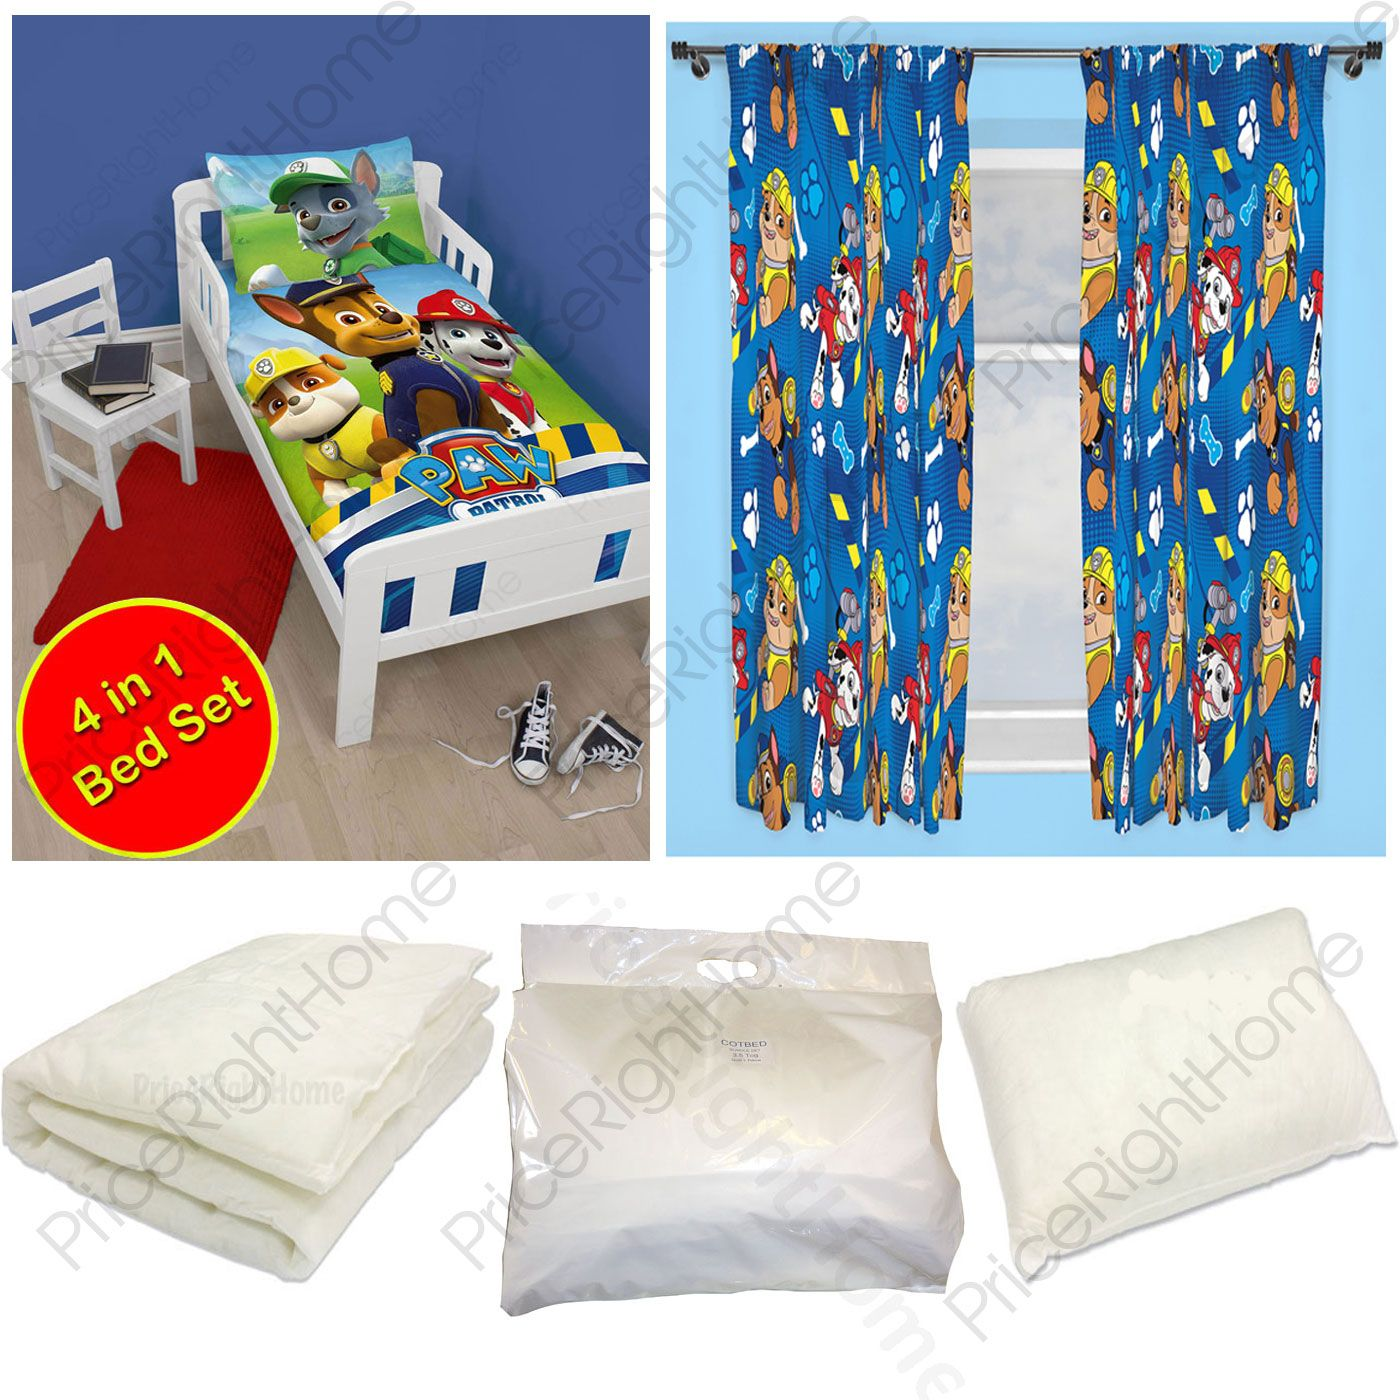 paw patrol junior schlafzimmer reihe bettbezug vorh nge erh ltlich kinder neu ebay. Black Bedroom Furniture Sets. Home Design Ideas